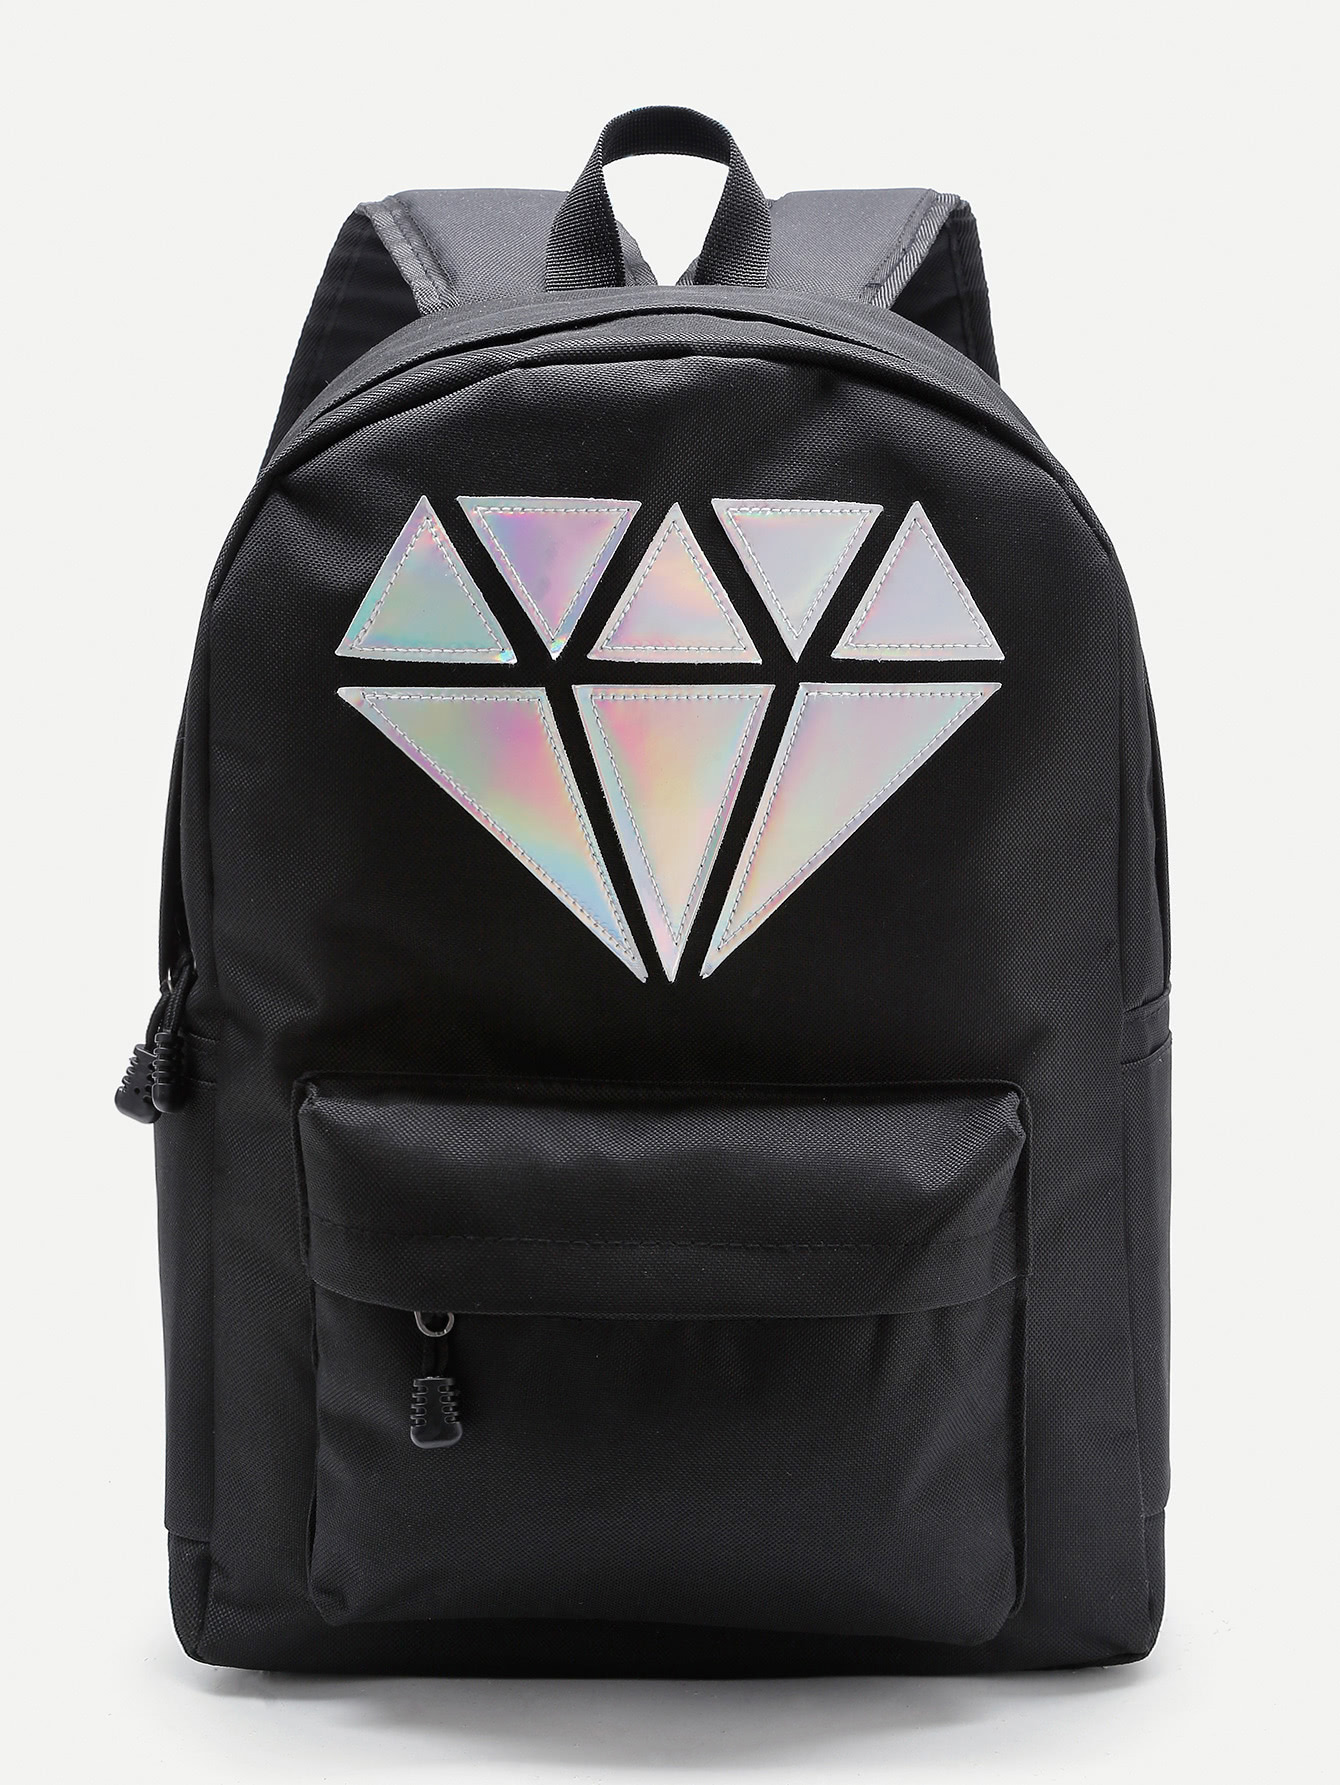 Metallic Diamond Patch Pocket Front Backpack 6 pcs semi metallic motorcycle front